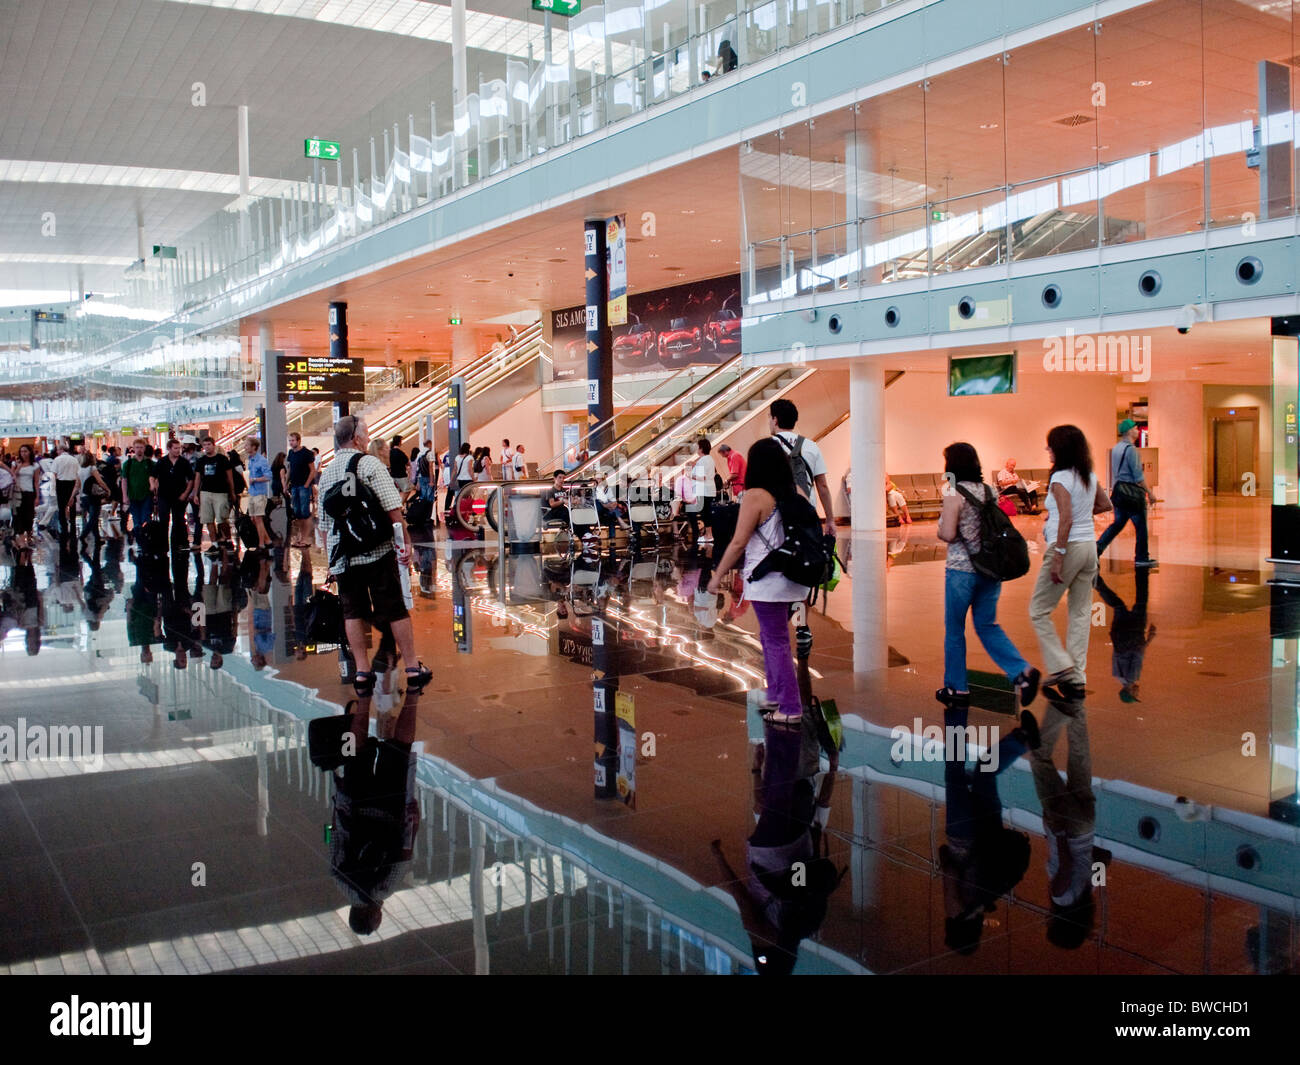 The new terminal from 2009 at Barcelona Airport or El Prat Airport - Stock Image